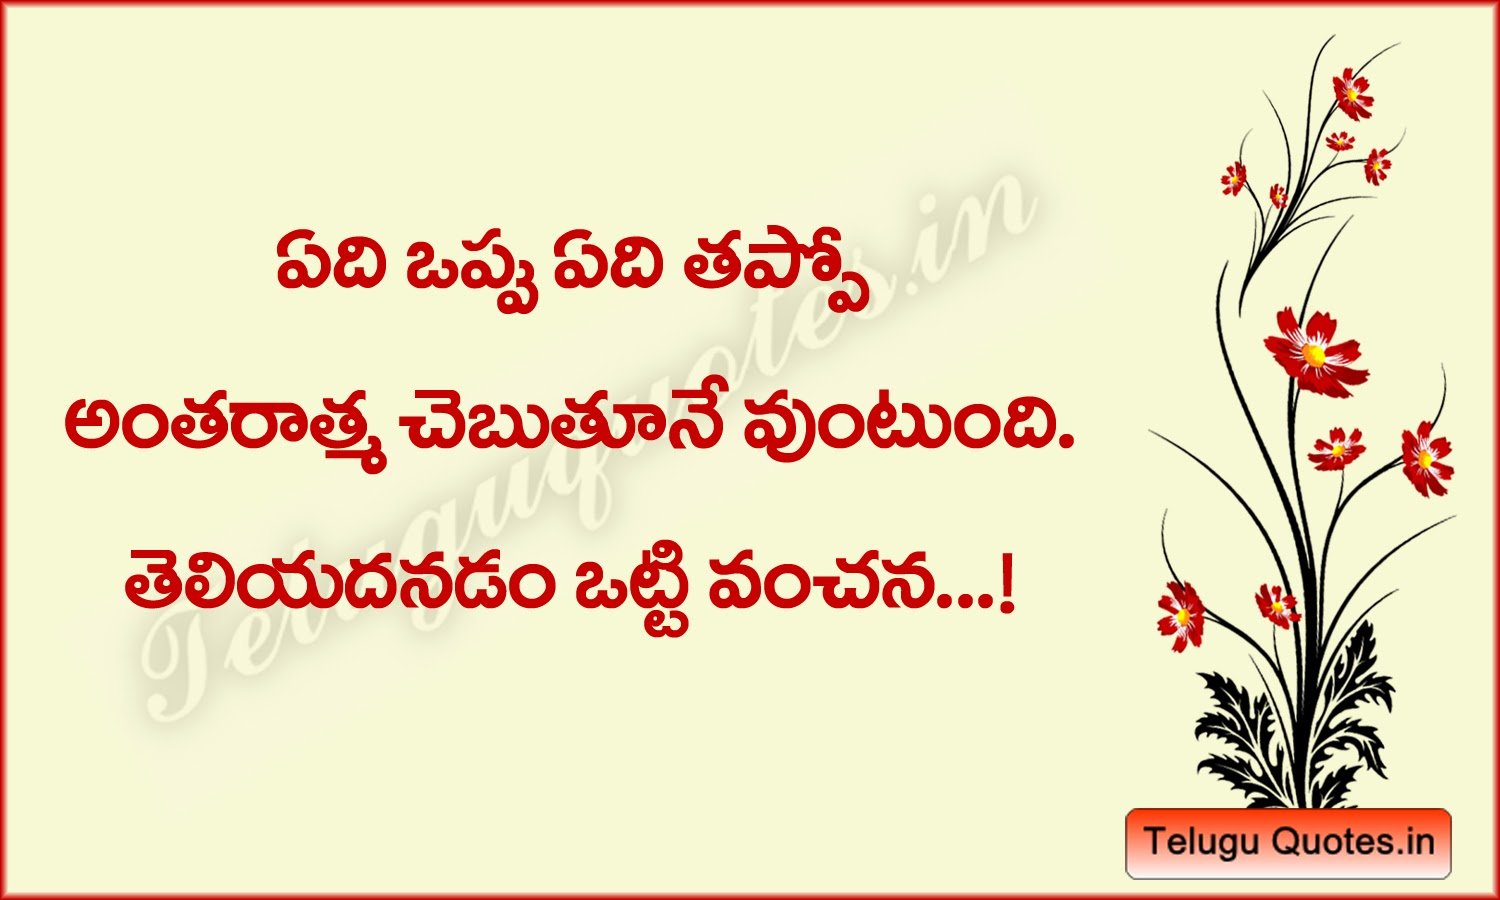 Telugu Quotes On Life Quotes About Life